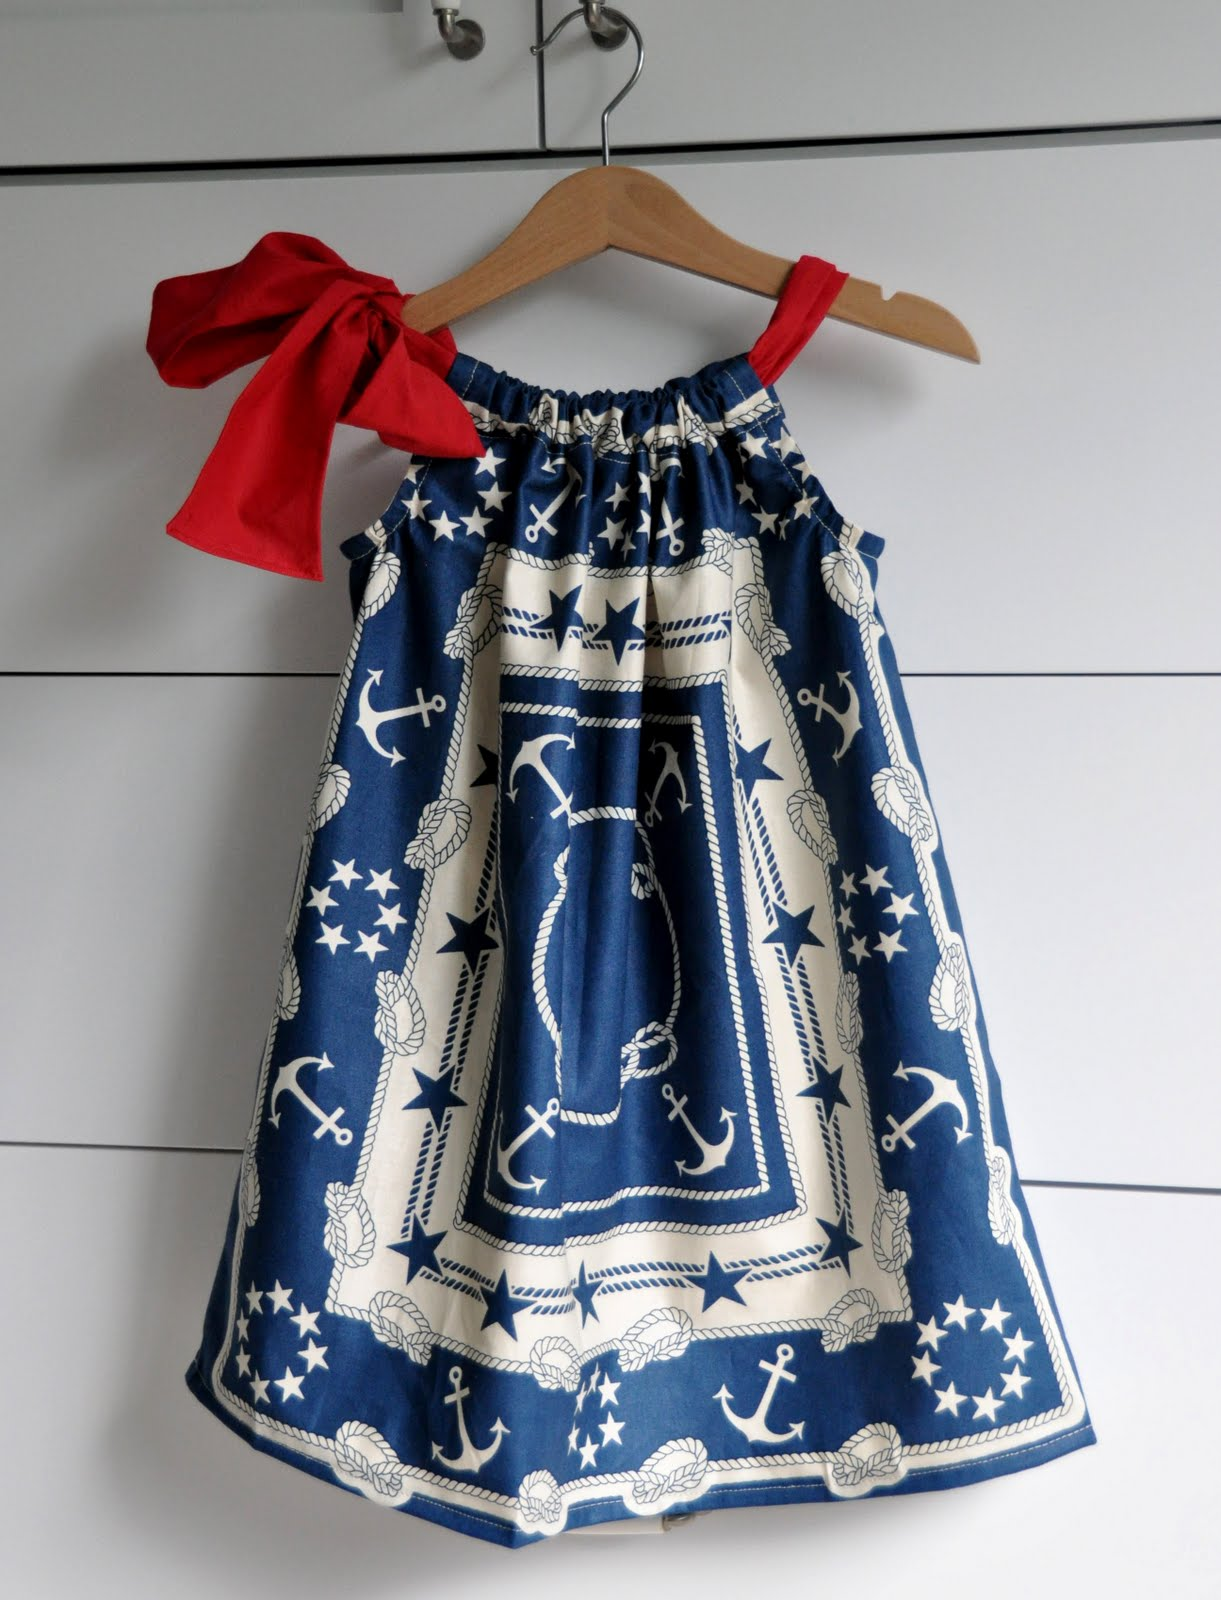 Cute Ideas For Pillowcase Dresses : Aesthetic Nest: Sewing: Patriotic Pillowcase Dresses